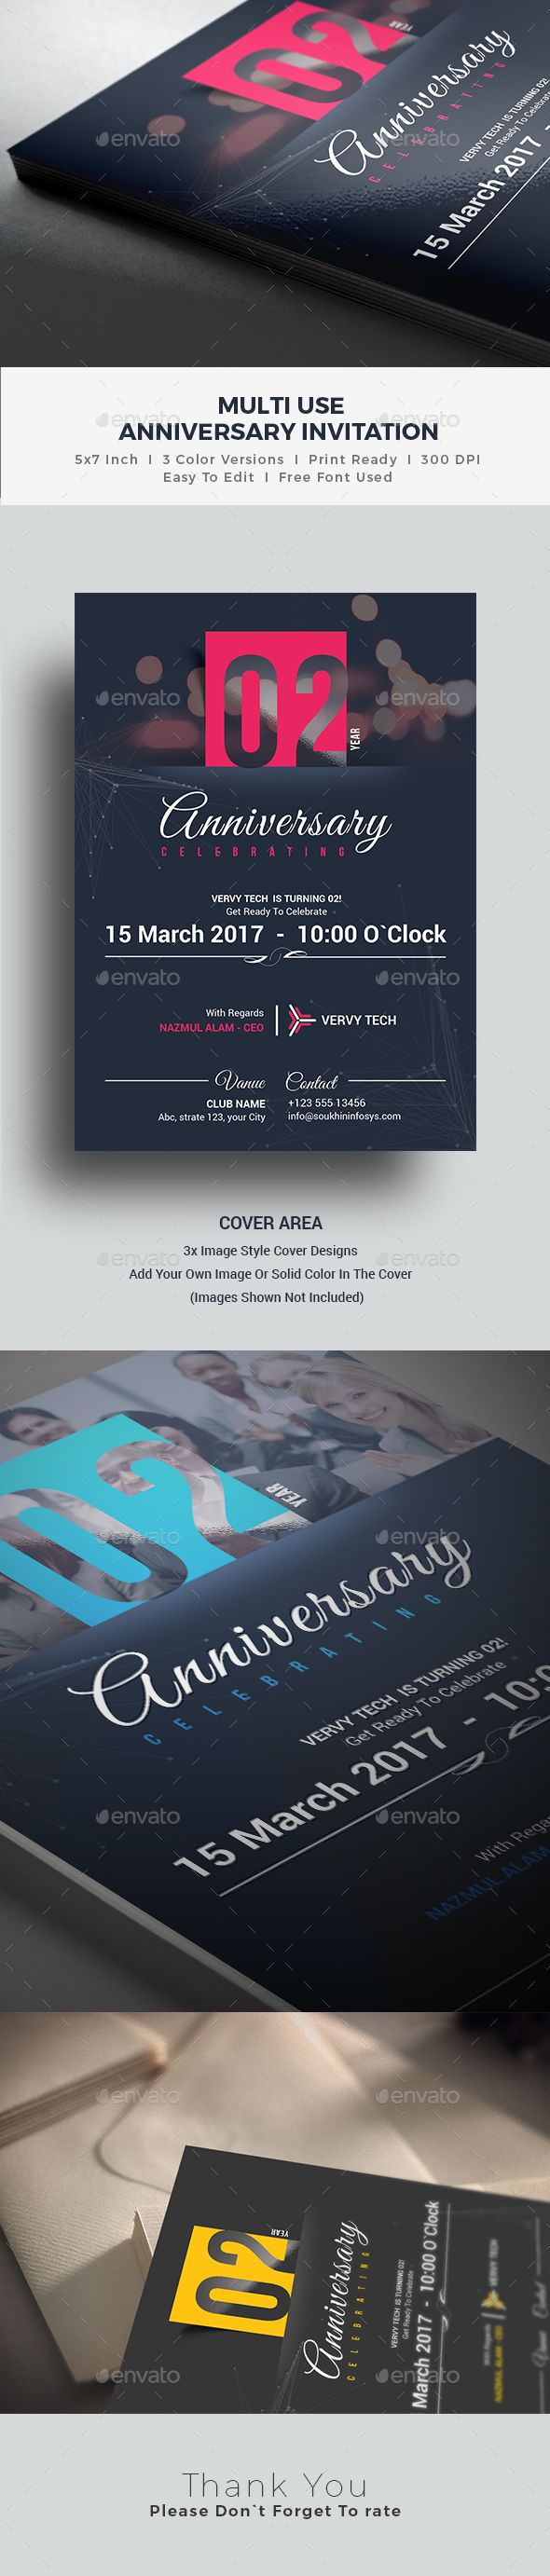 sample wedding invitation letter for uk visa%0A Best     Invitation card design ideas on Pinterest   Invitation  Standard  cv format and Wedding invitation design